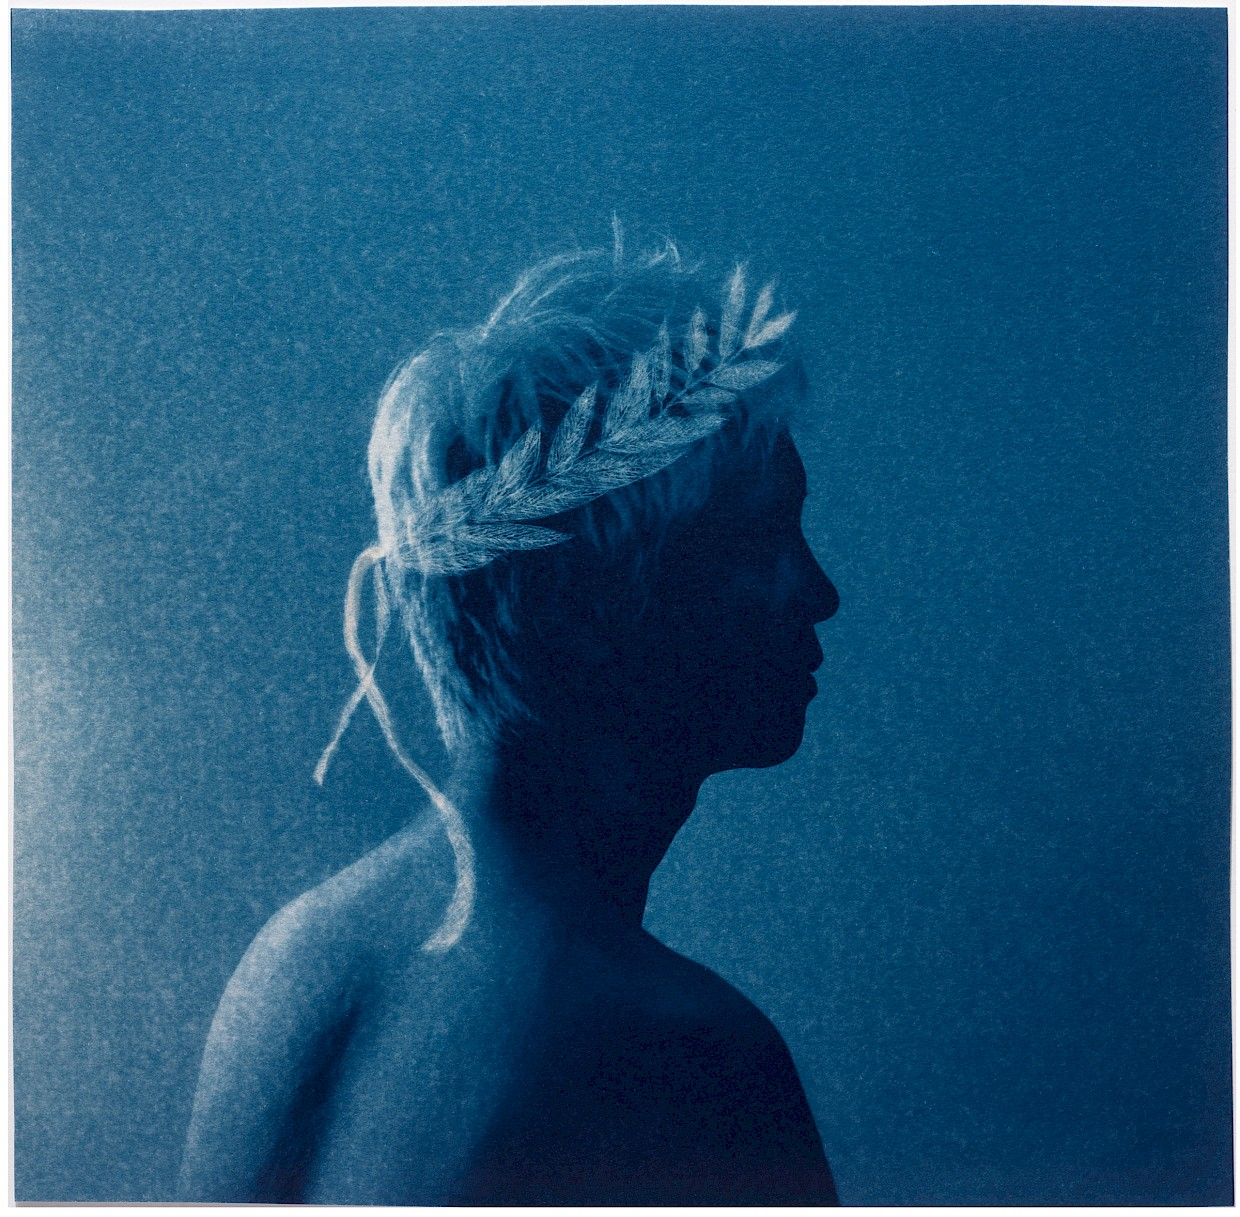 cyanotype art print for sale man with laurel wreath crown symbol for victory love greek mythology example of inspiration by coincidence